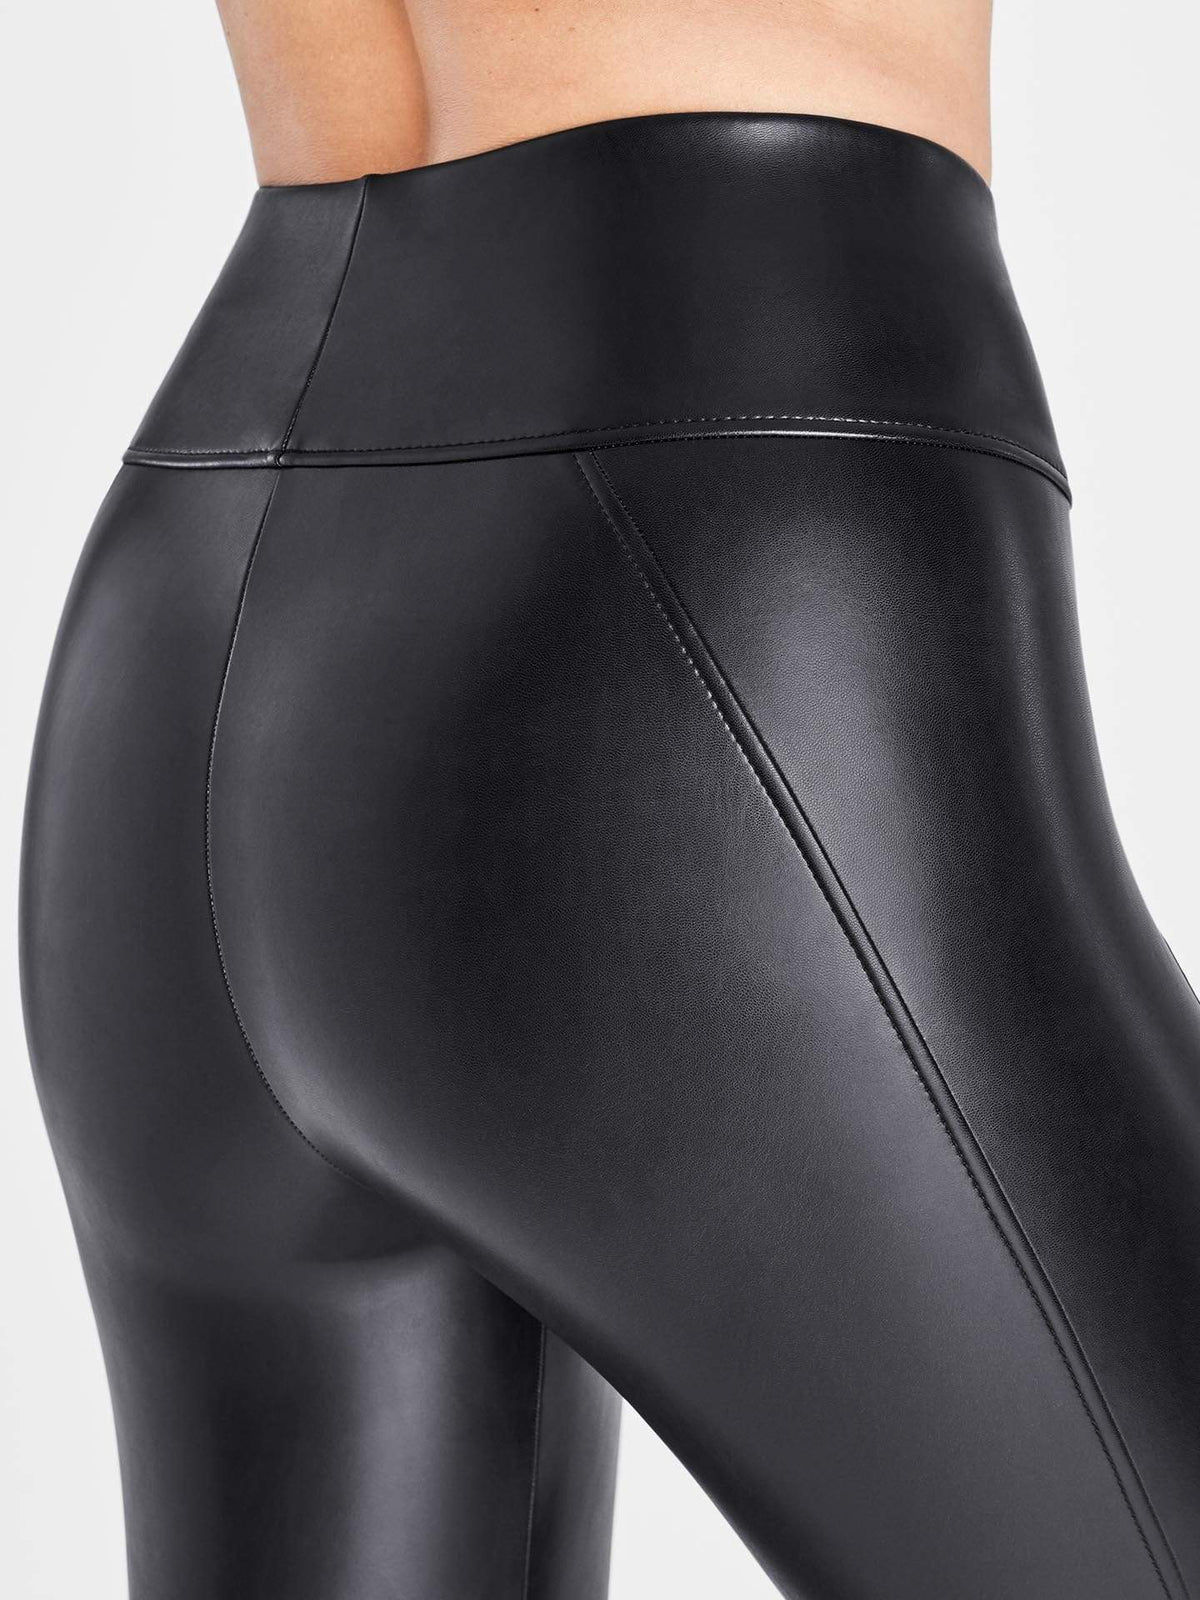 Wolford Edie forming Leggings In Black